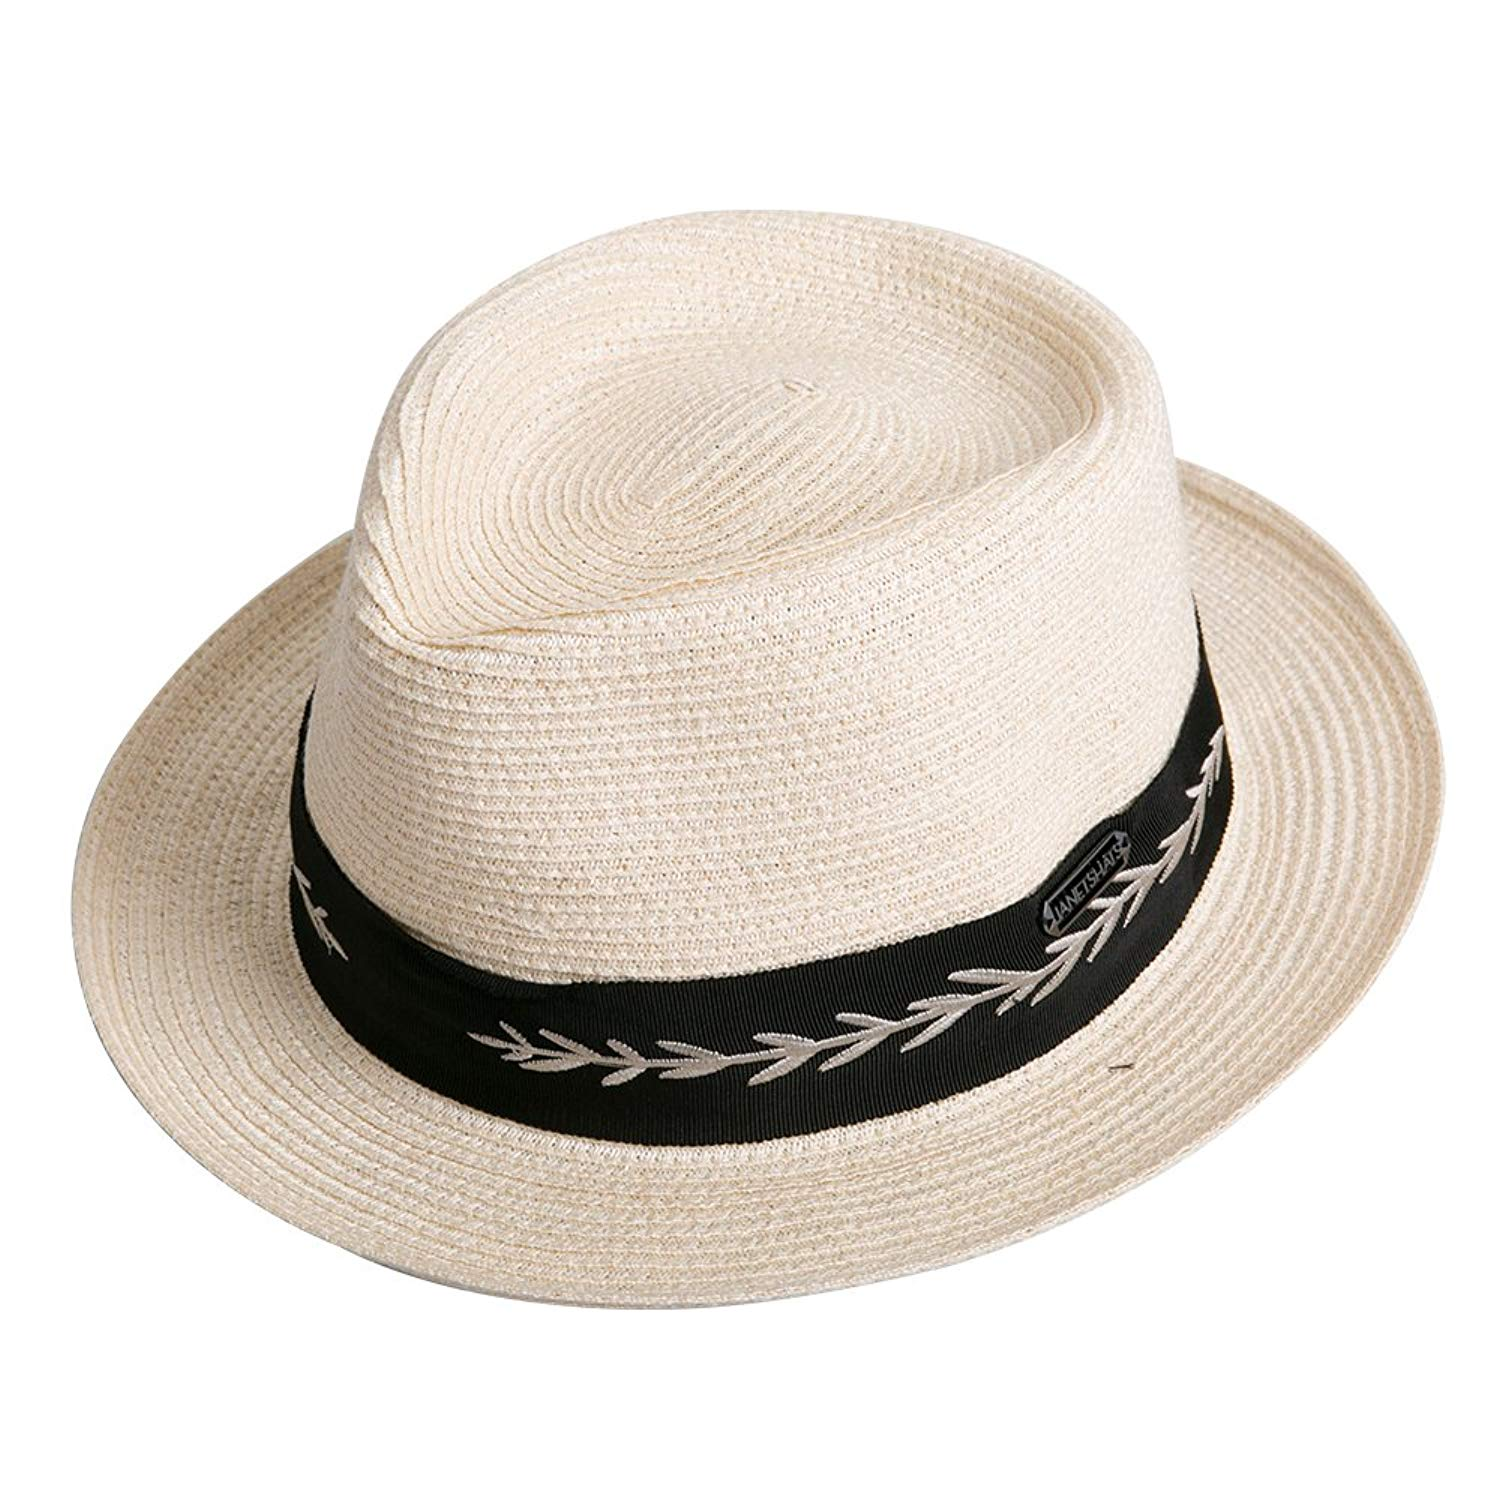 020426d85ba Get Quotations · Janetshats Pork Pie Trilby Men Straw Hat Summer Hat  Foldable Soft Leaf Ribbon Trim